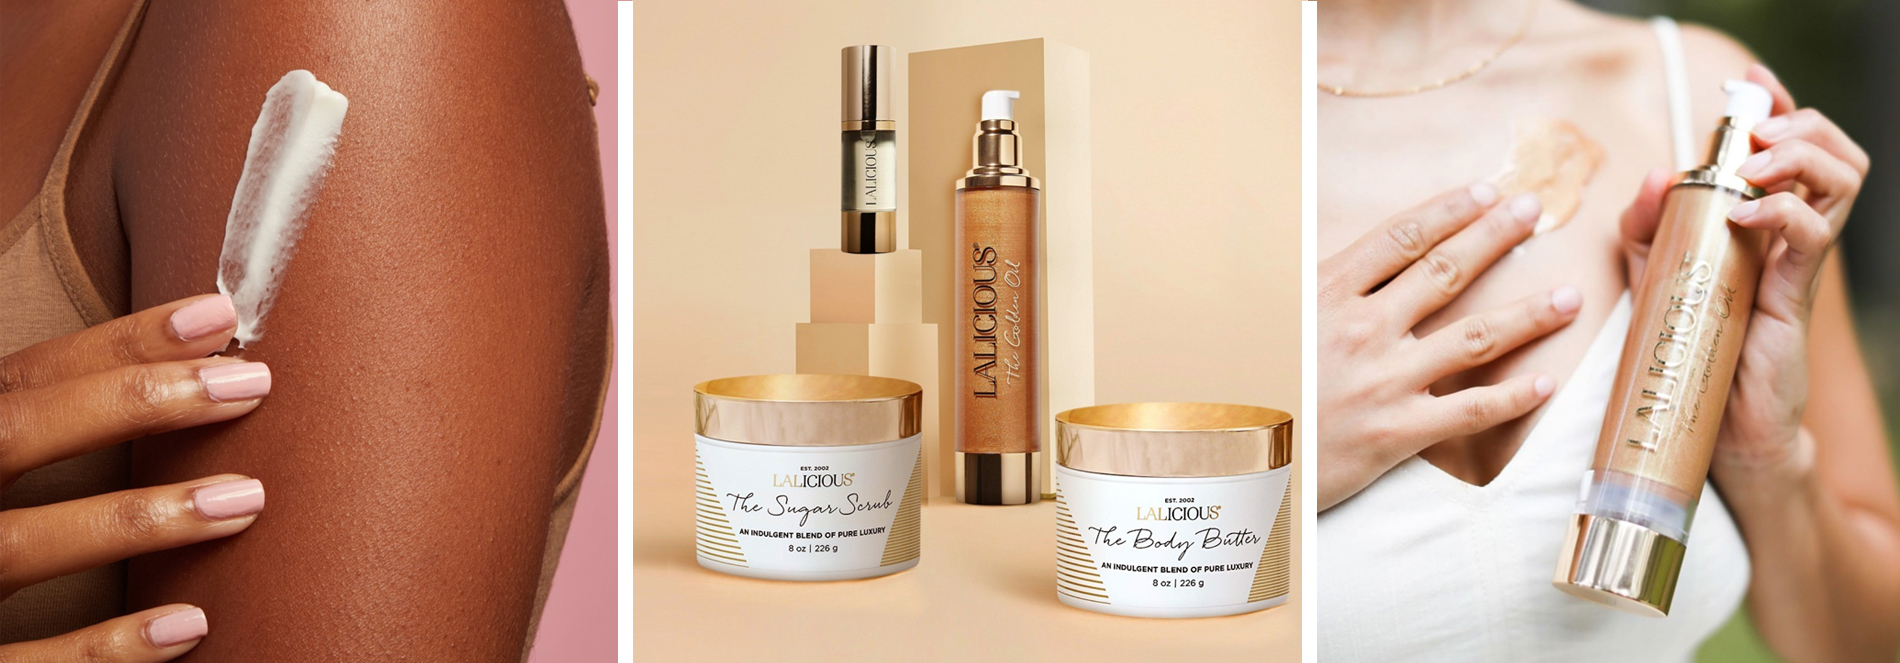 Luxurious body care from Lalicious. Sugar Scrub, Body Butter, Golden Oil.